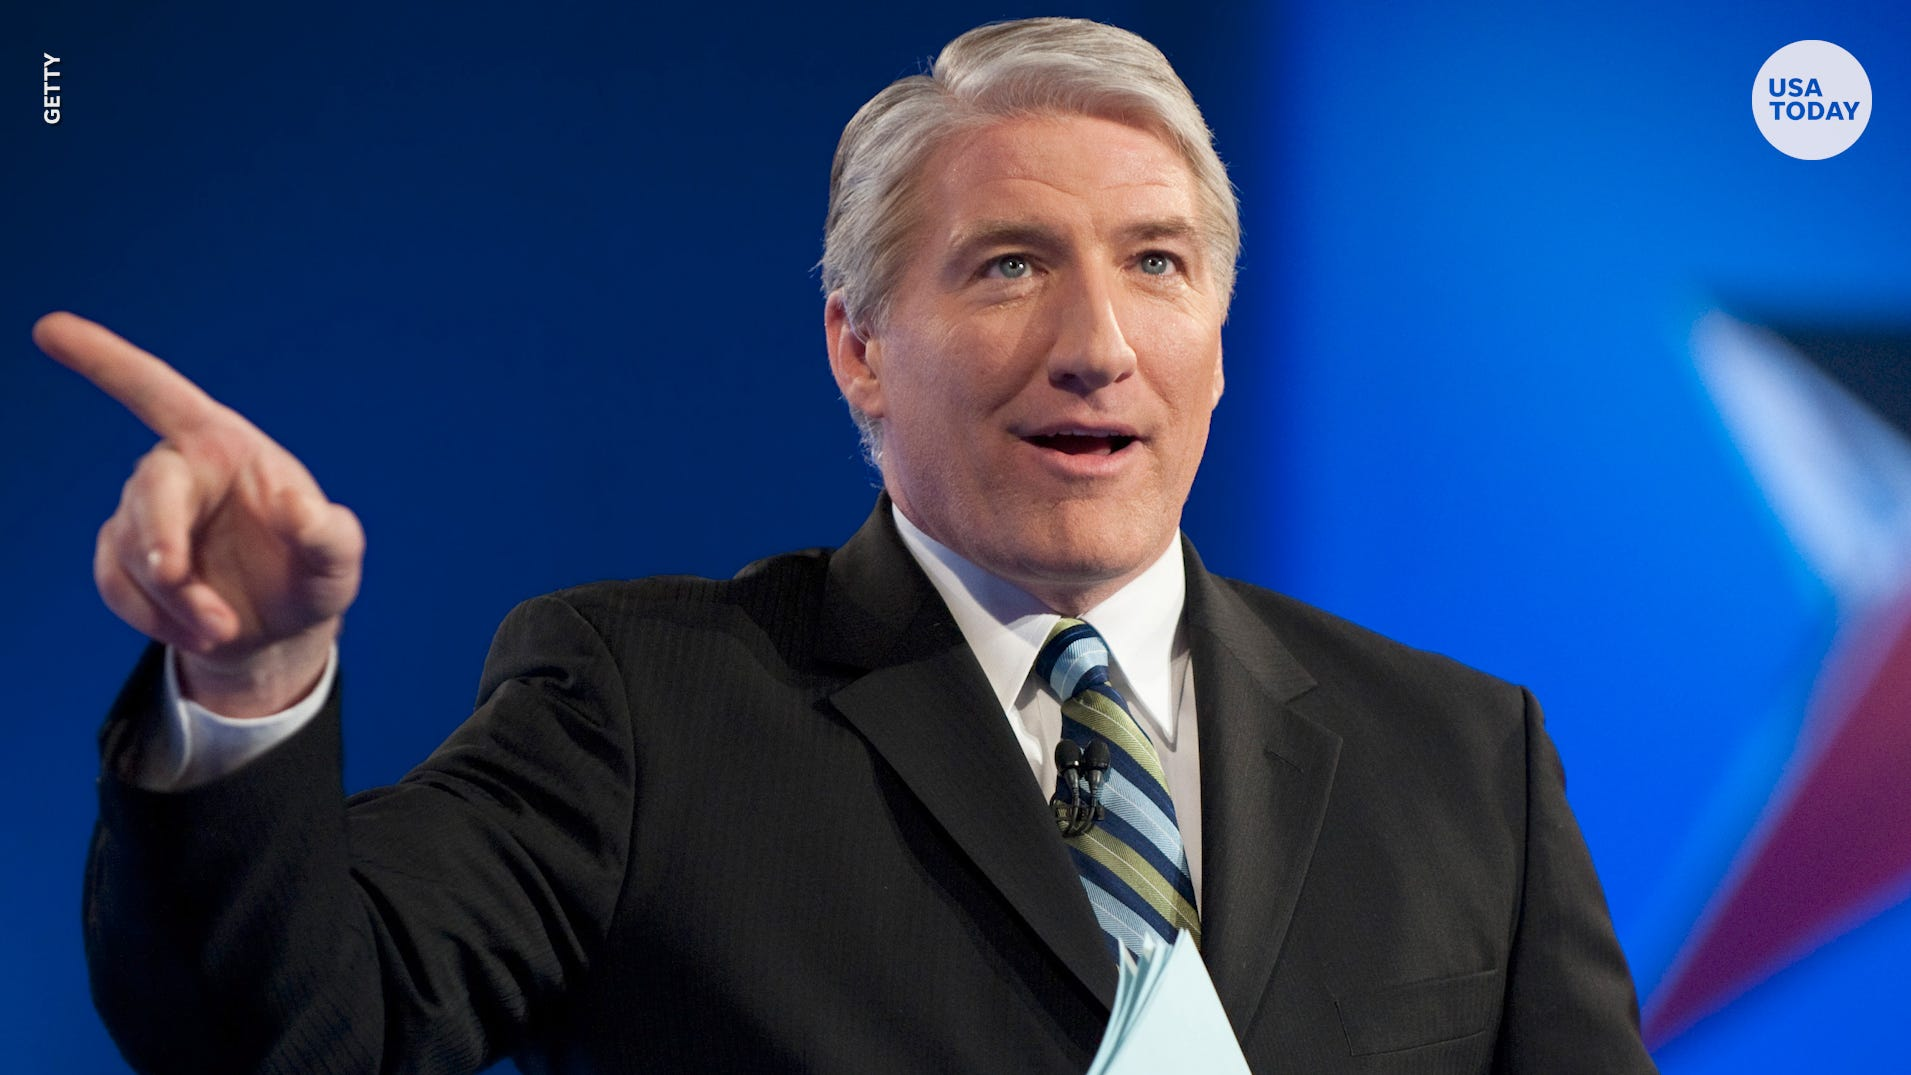 CNN's John King may be the only one having 'fun' on